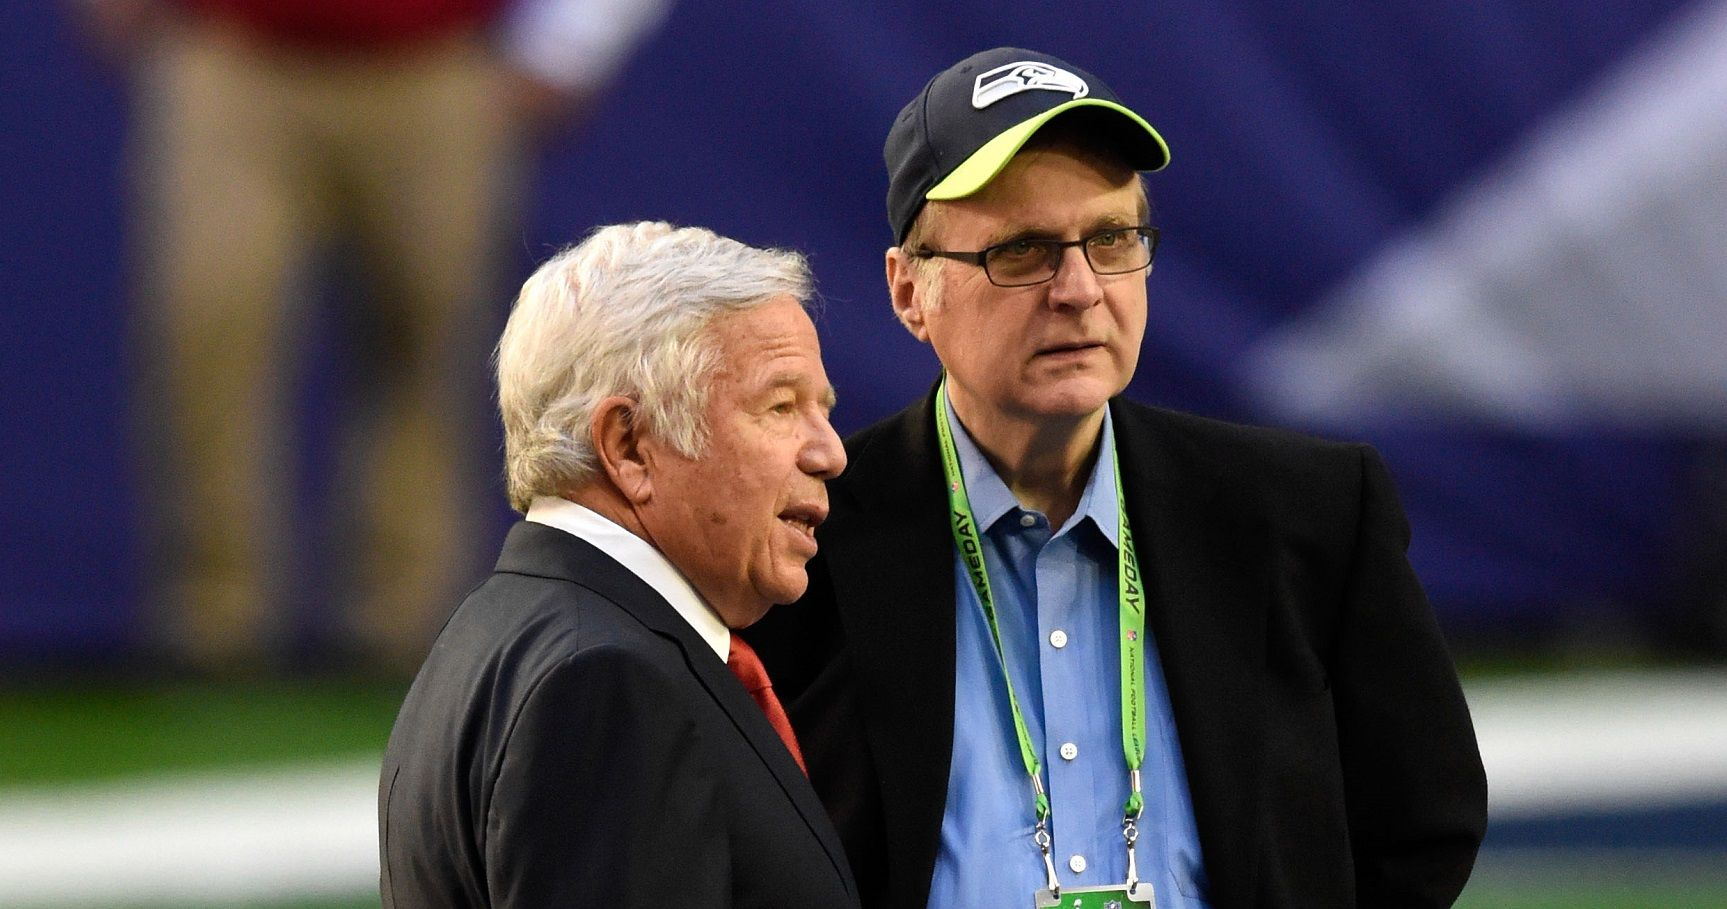 Top 10 Richest NFL Owners in 2015